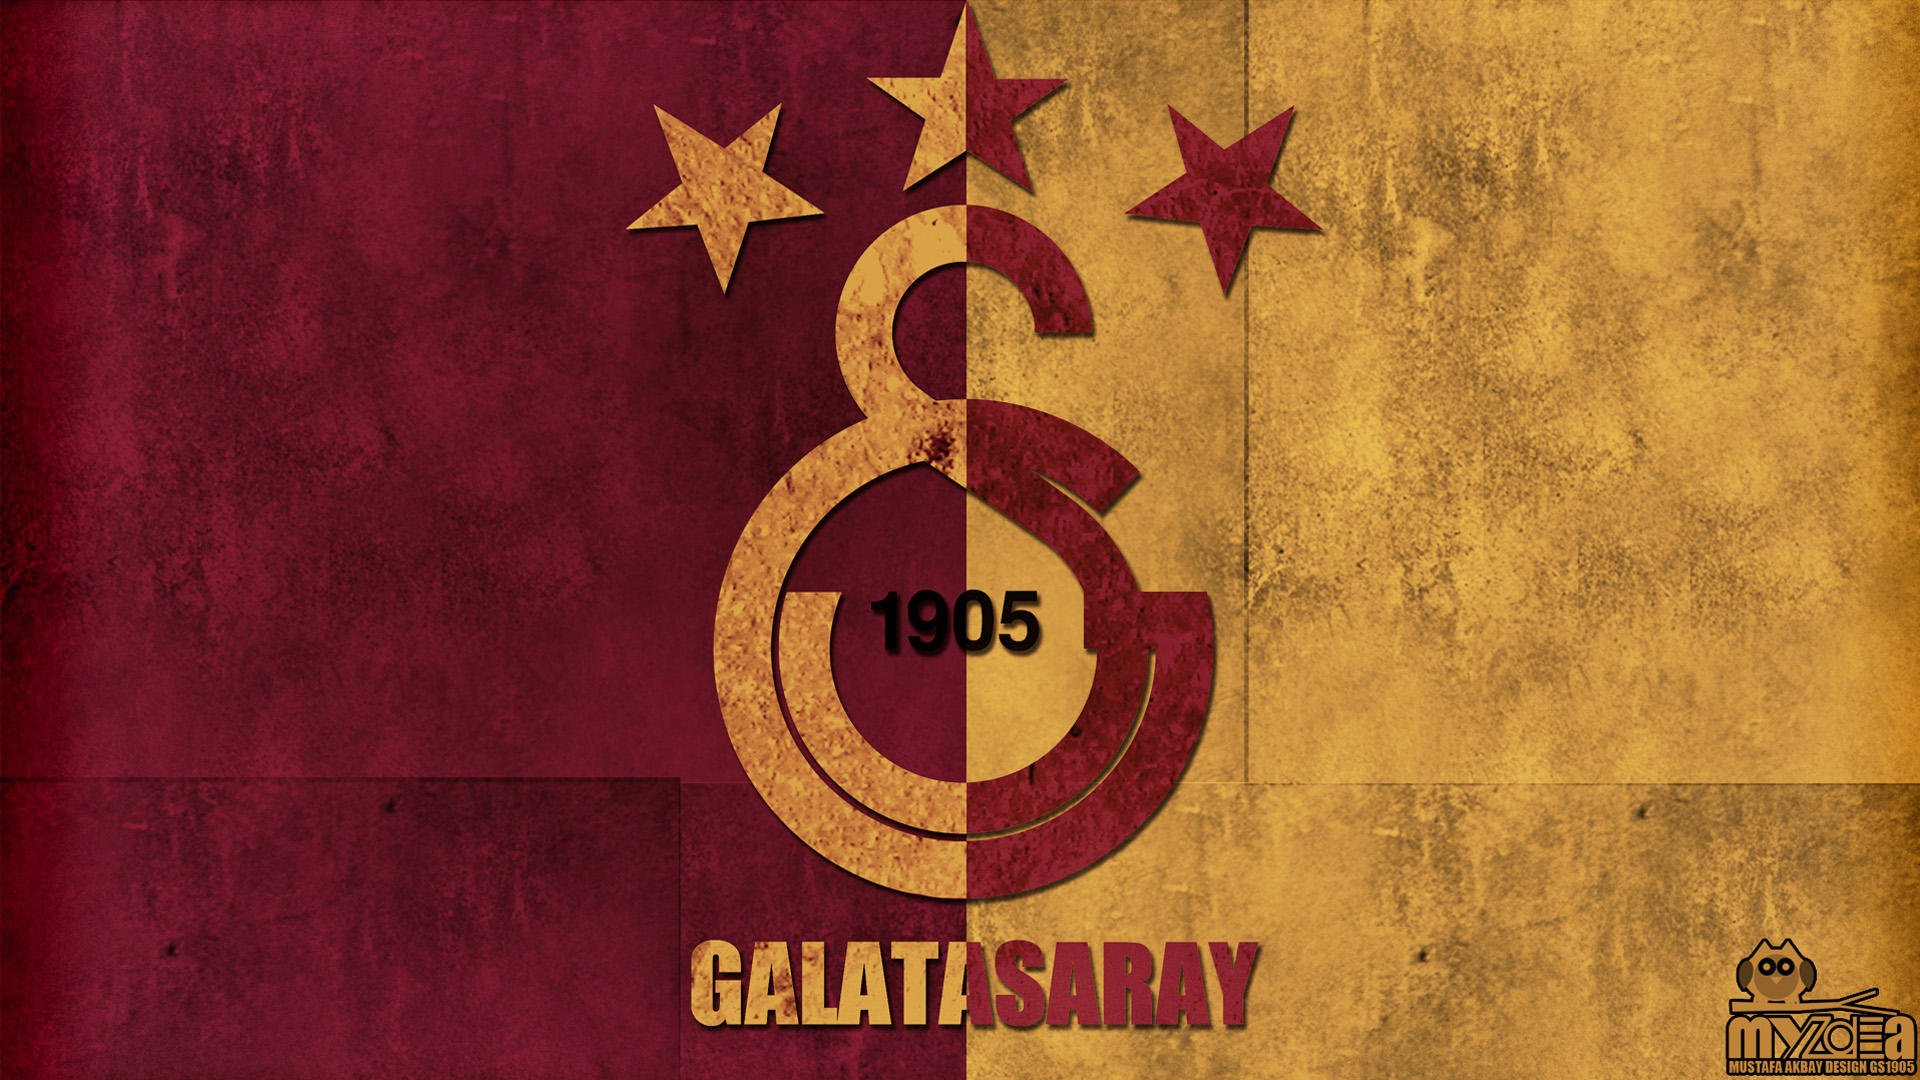 Gallery For Galatasaray Wallpapers 1920x1080